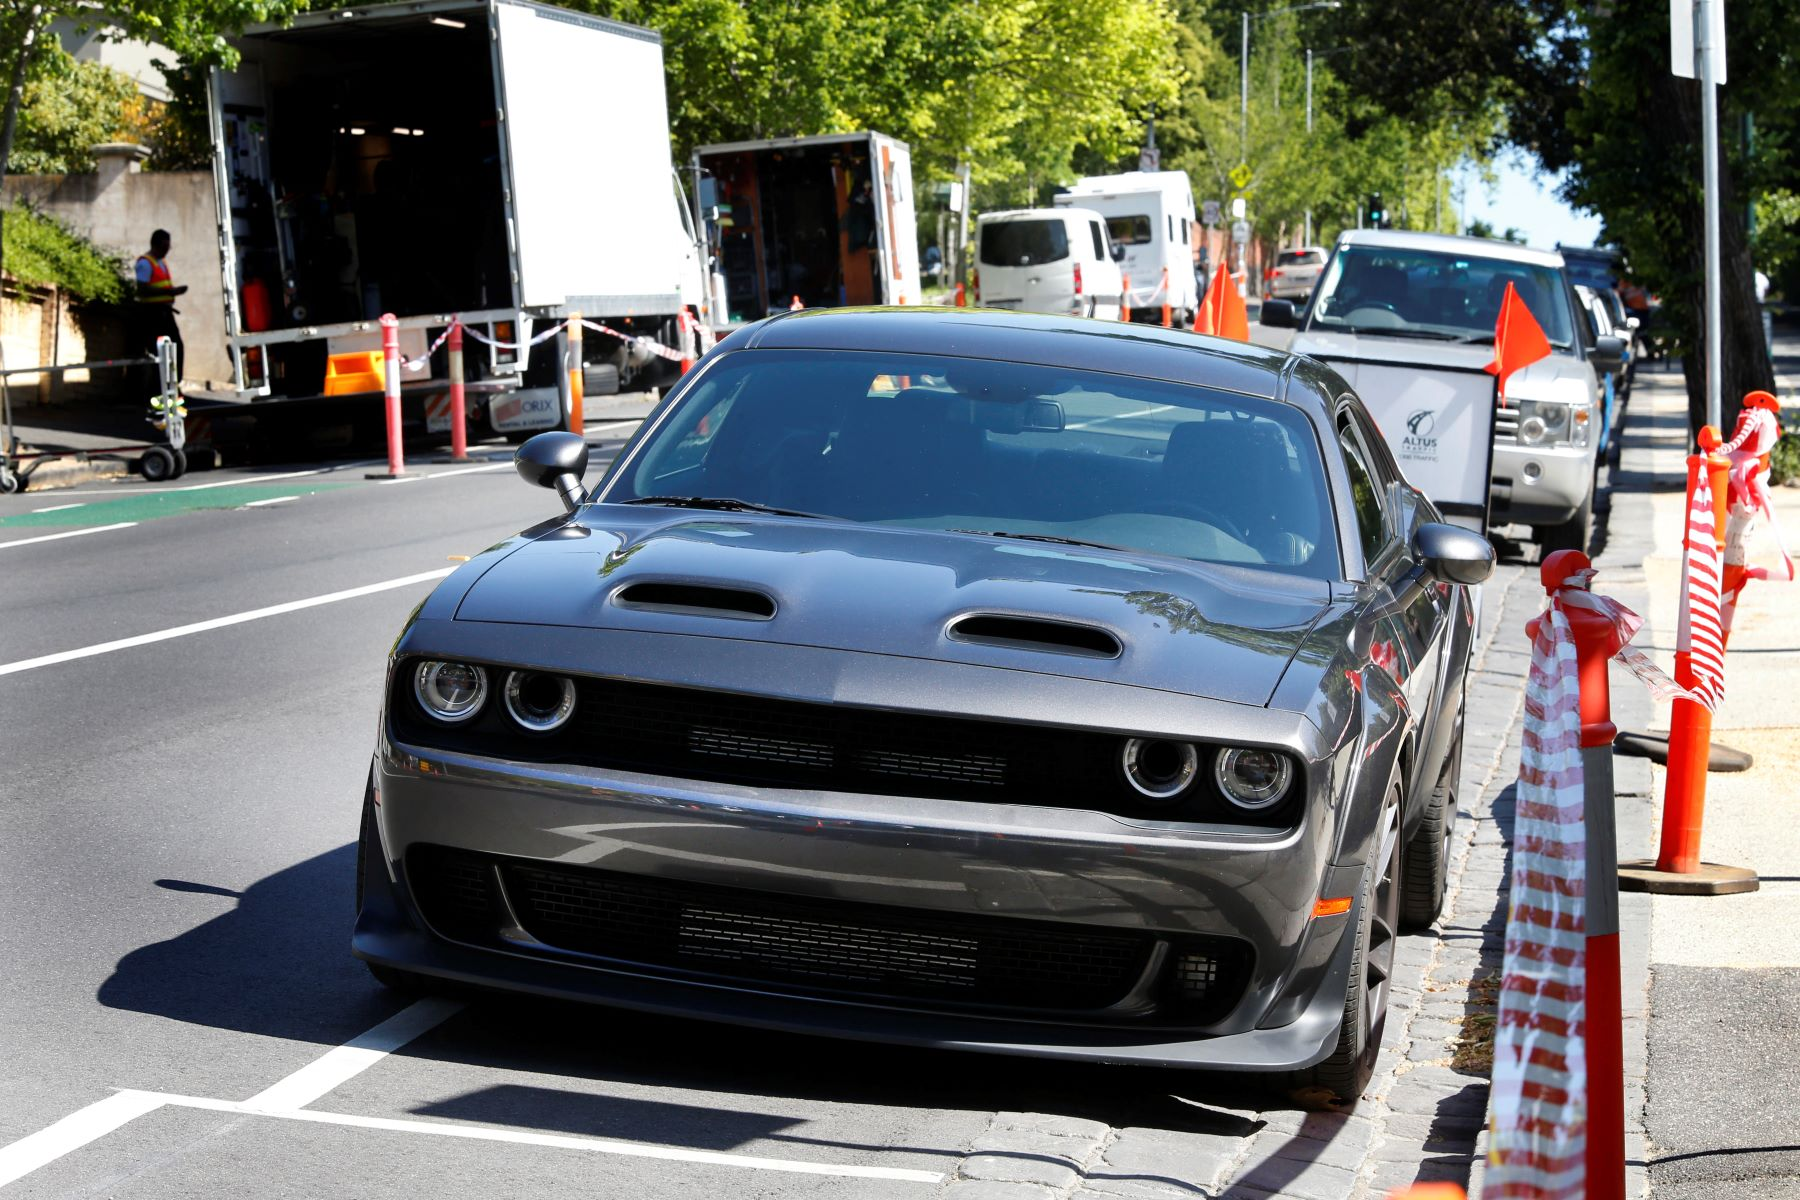 A Dodge Challenger Hellcat model used as a prop during filming for a Liam Neeson movie